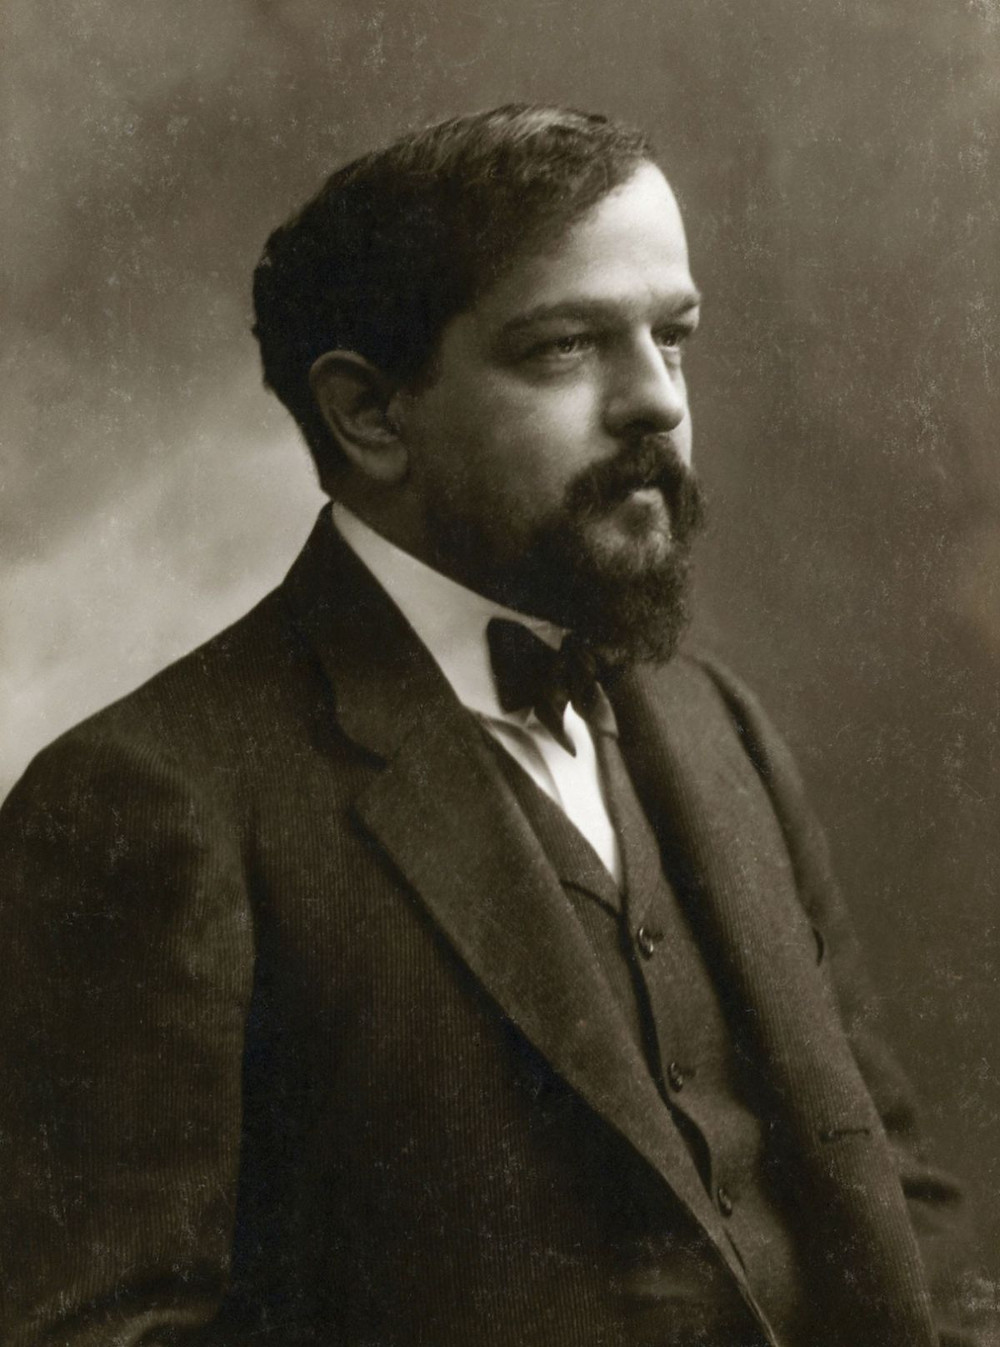 Claude Debussy, the first representative of musical Modernism